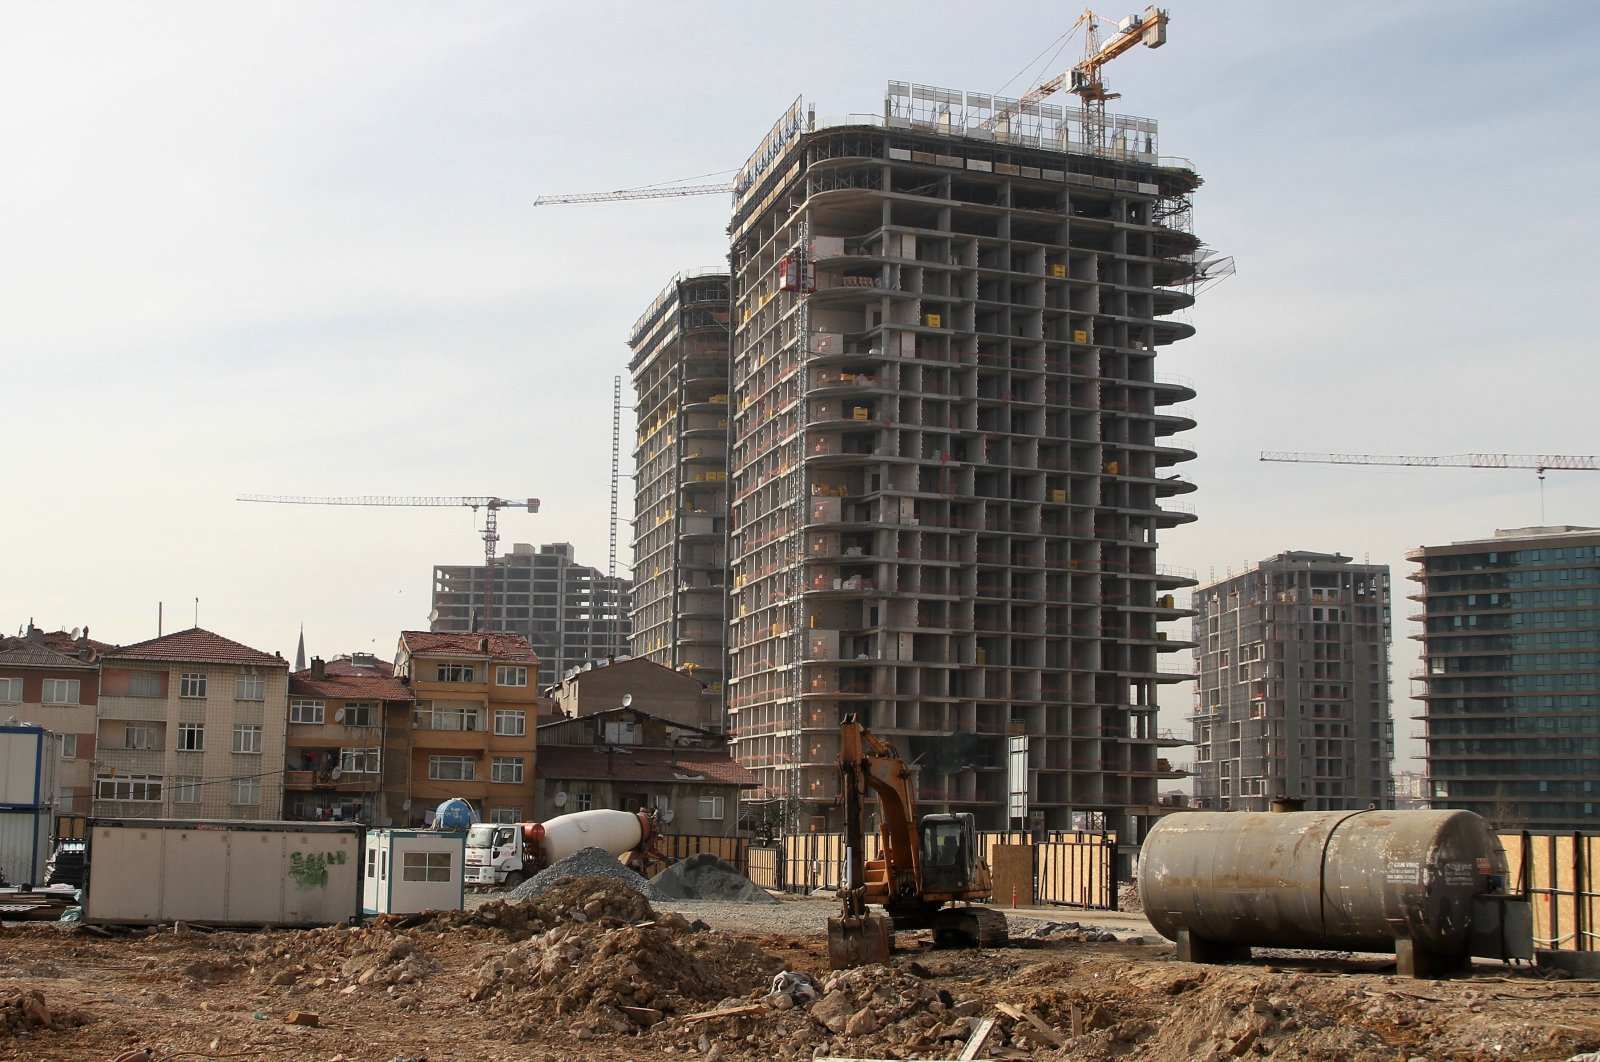 A view of a new building rising next to old buildings in the Fikirtepe neighborhood of Kadıköy in Istanbul, Turkey, March 25, 2017. (PHOTO BY FURKAN KARA)